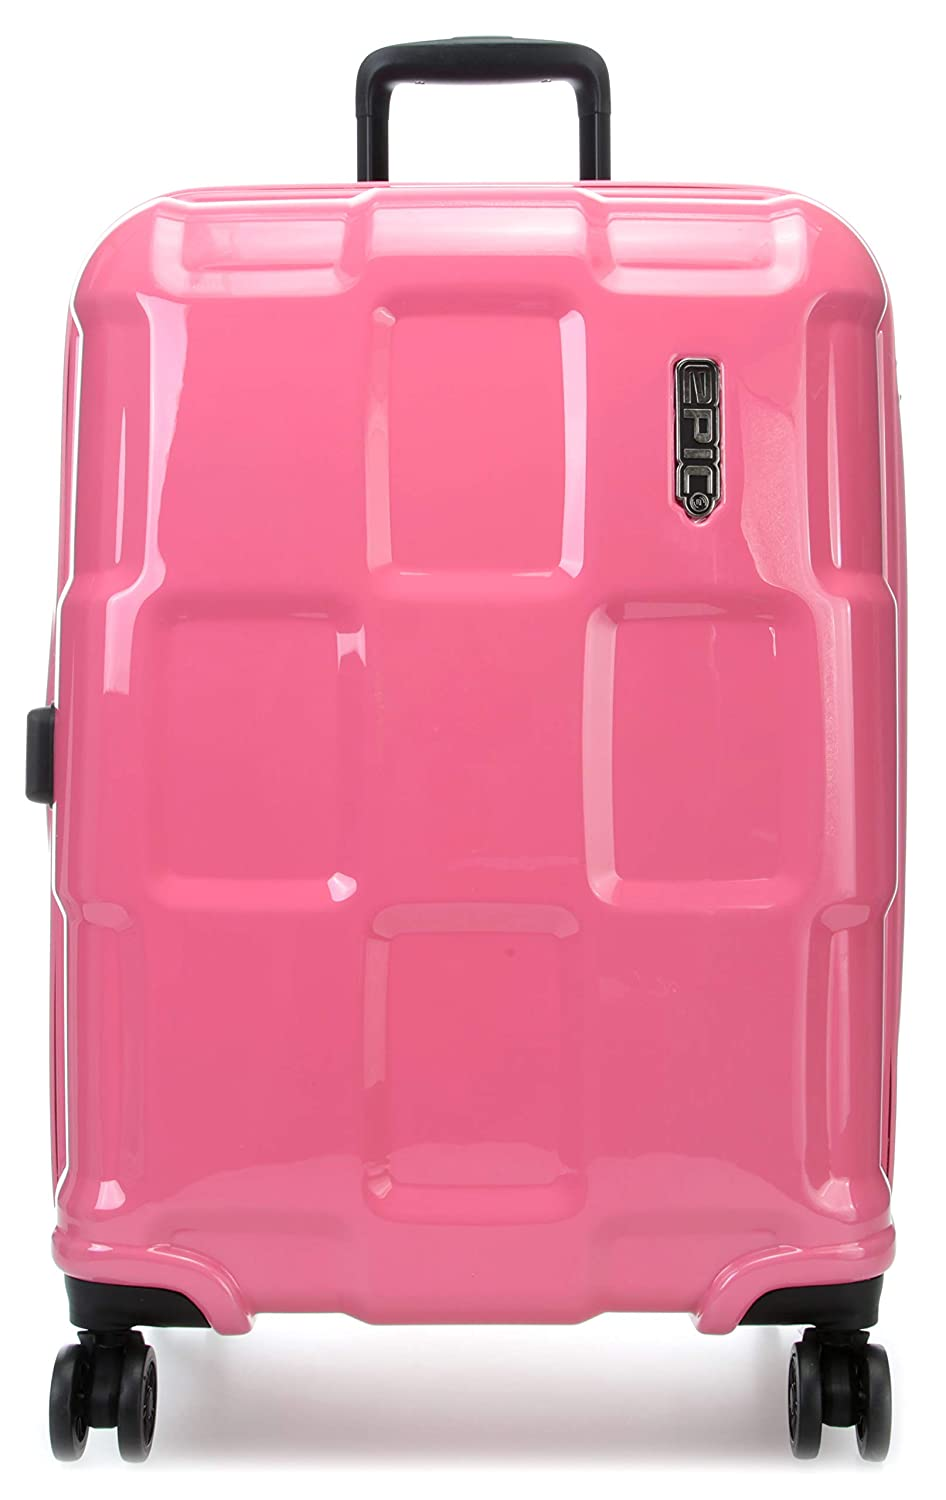 Crate Roues Pink Epic Solids Ex 4 Valise 76 CmBagages rxoeBdWC